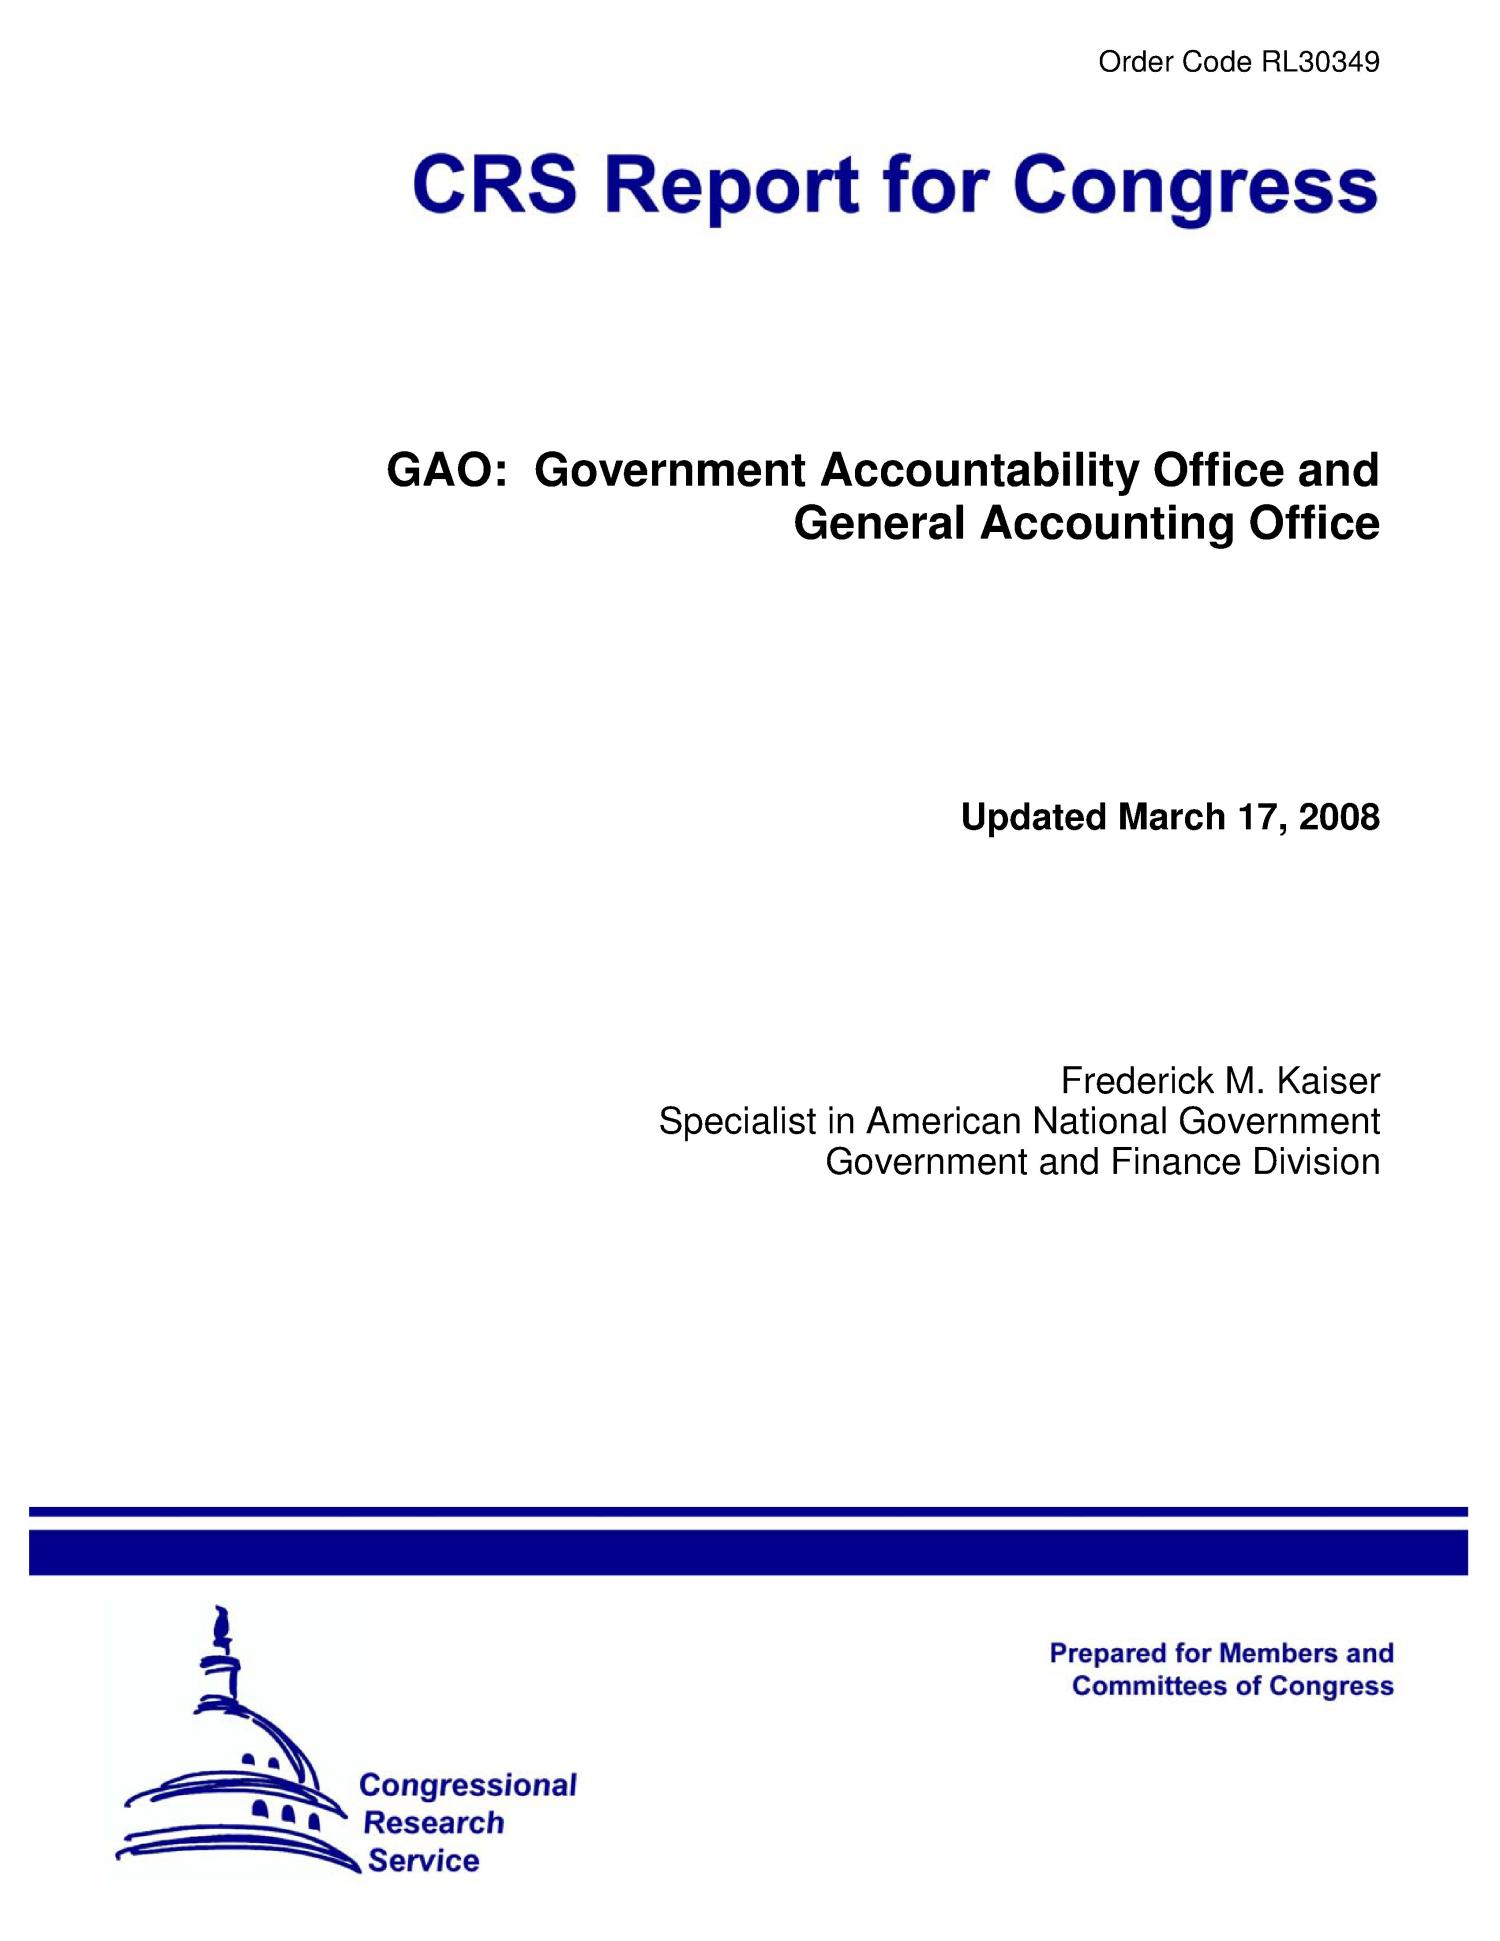 GAO Government Accountability fice and General Accounting